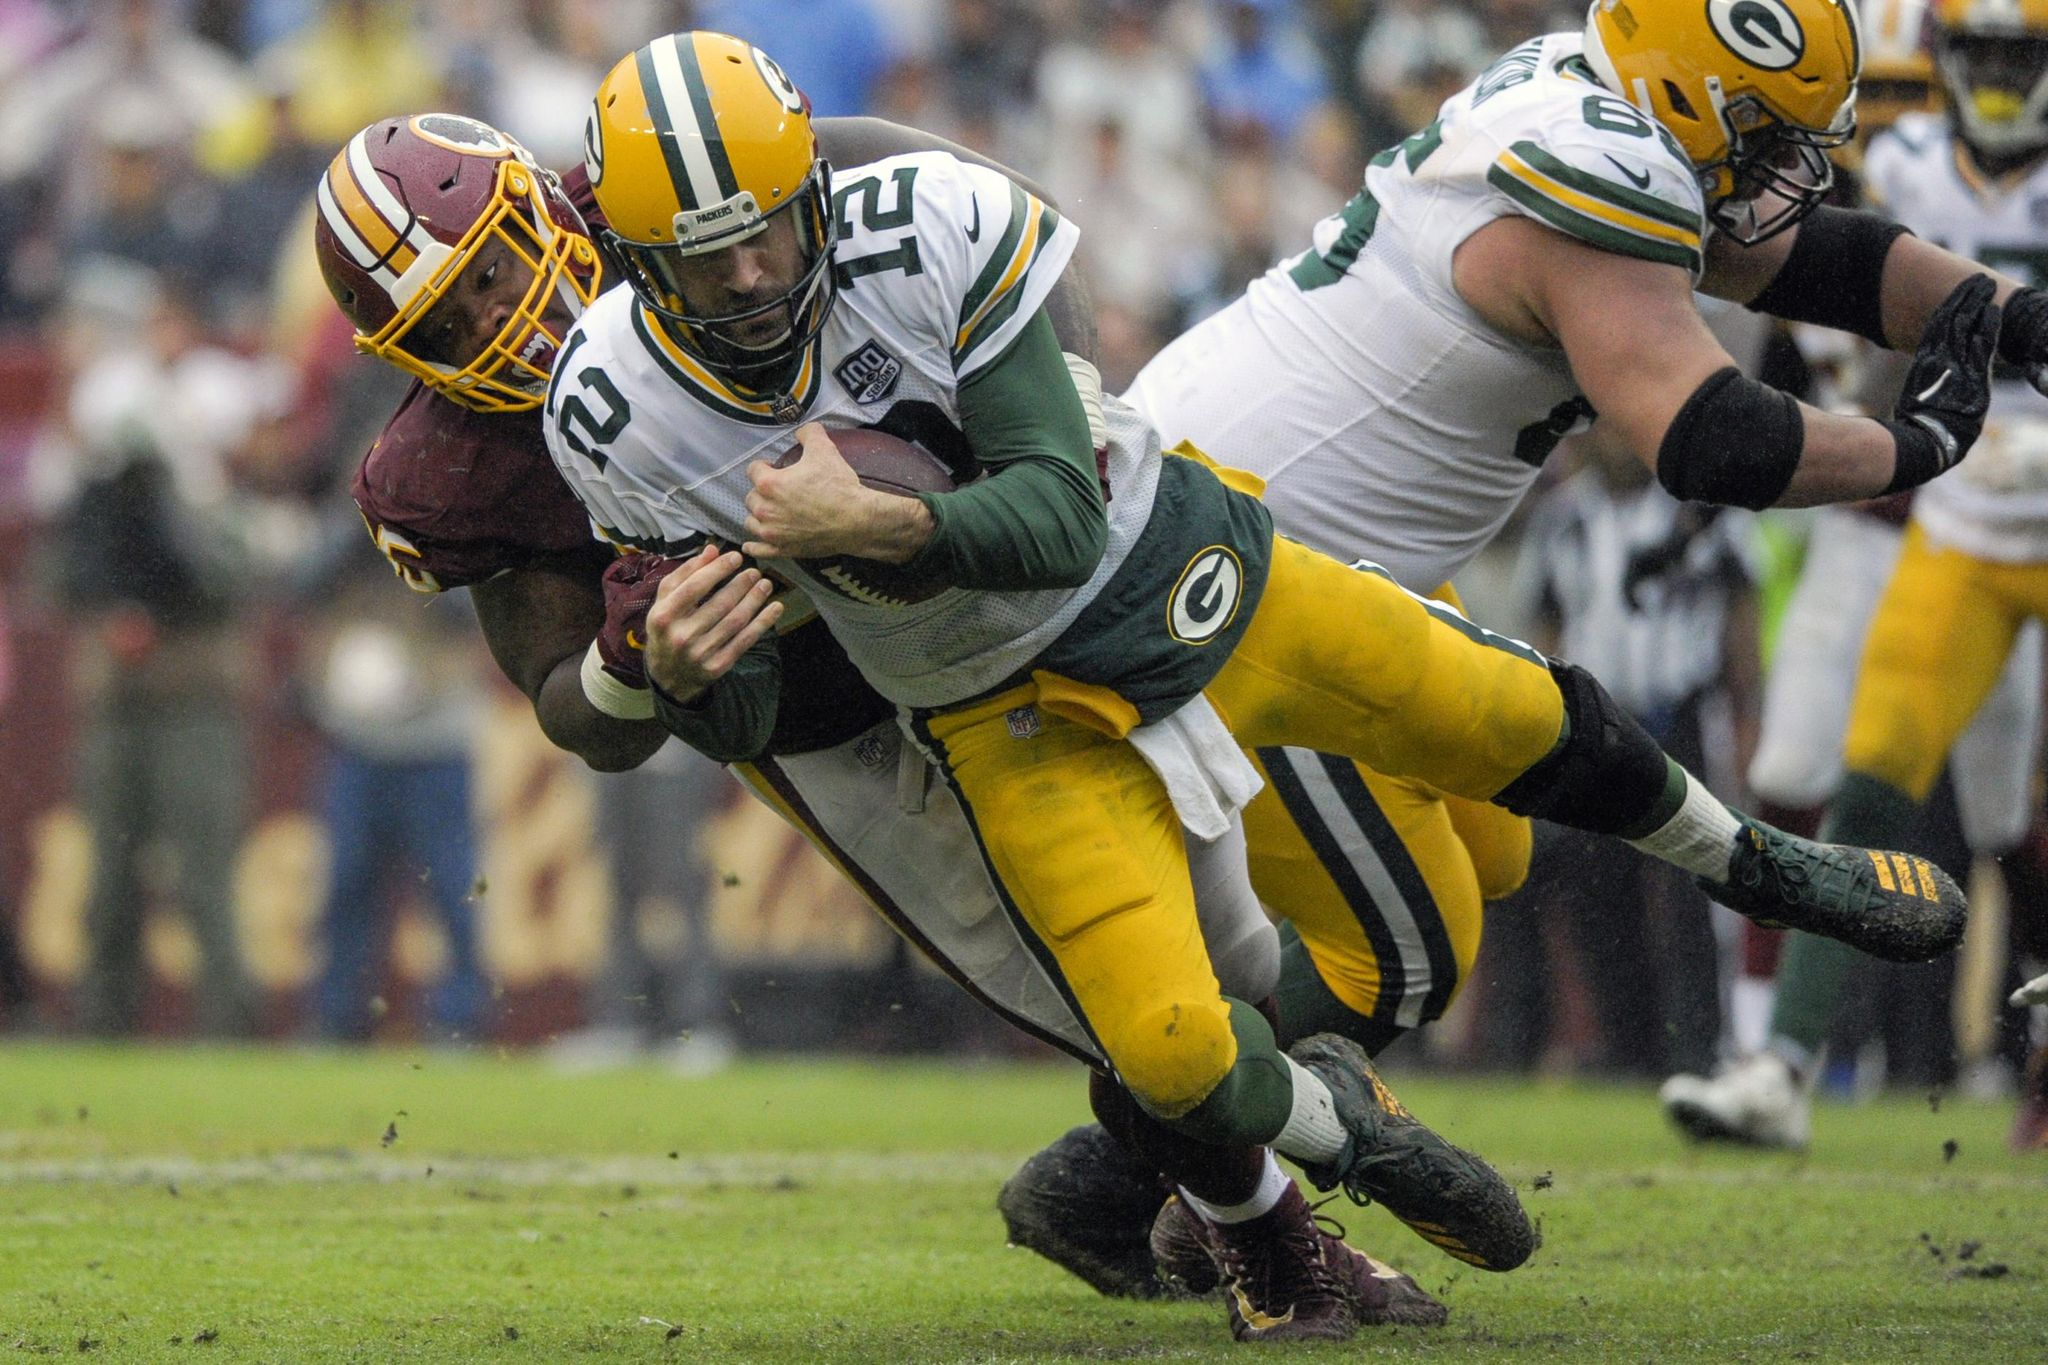 A-Rod driven to drink as Packers digest 31-17 loss to Skins - Washington Times